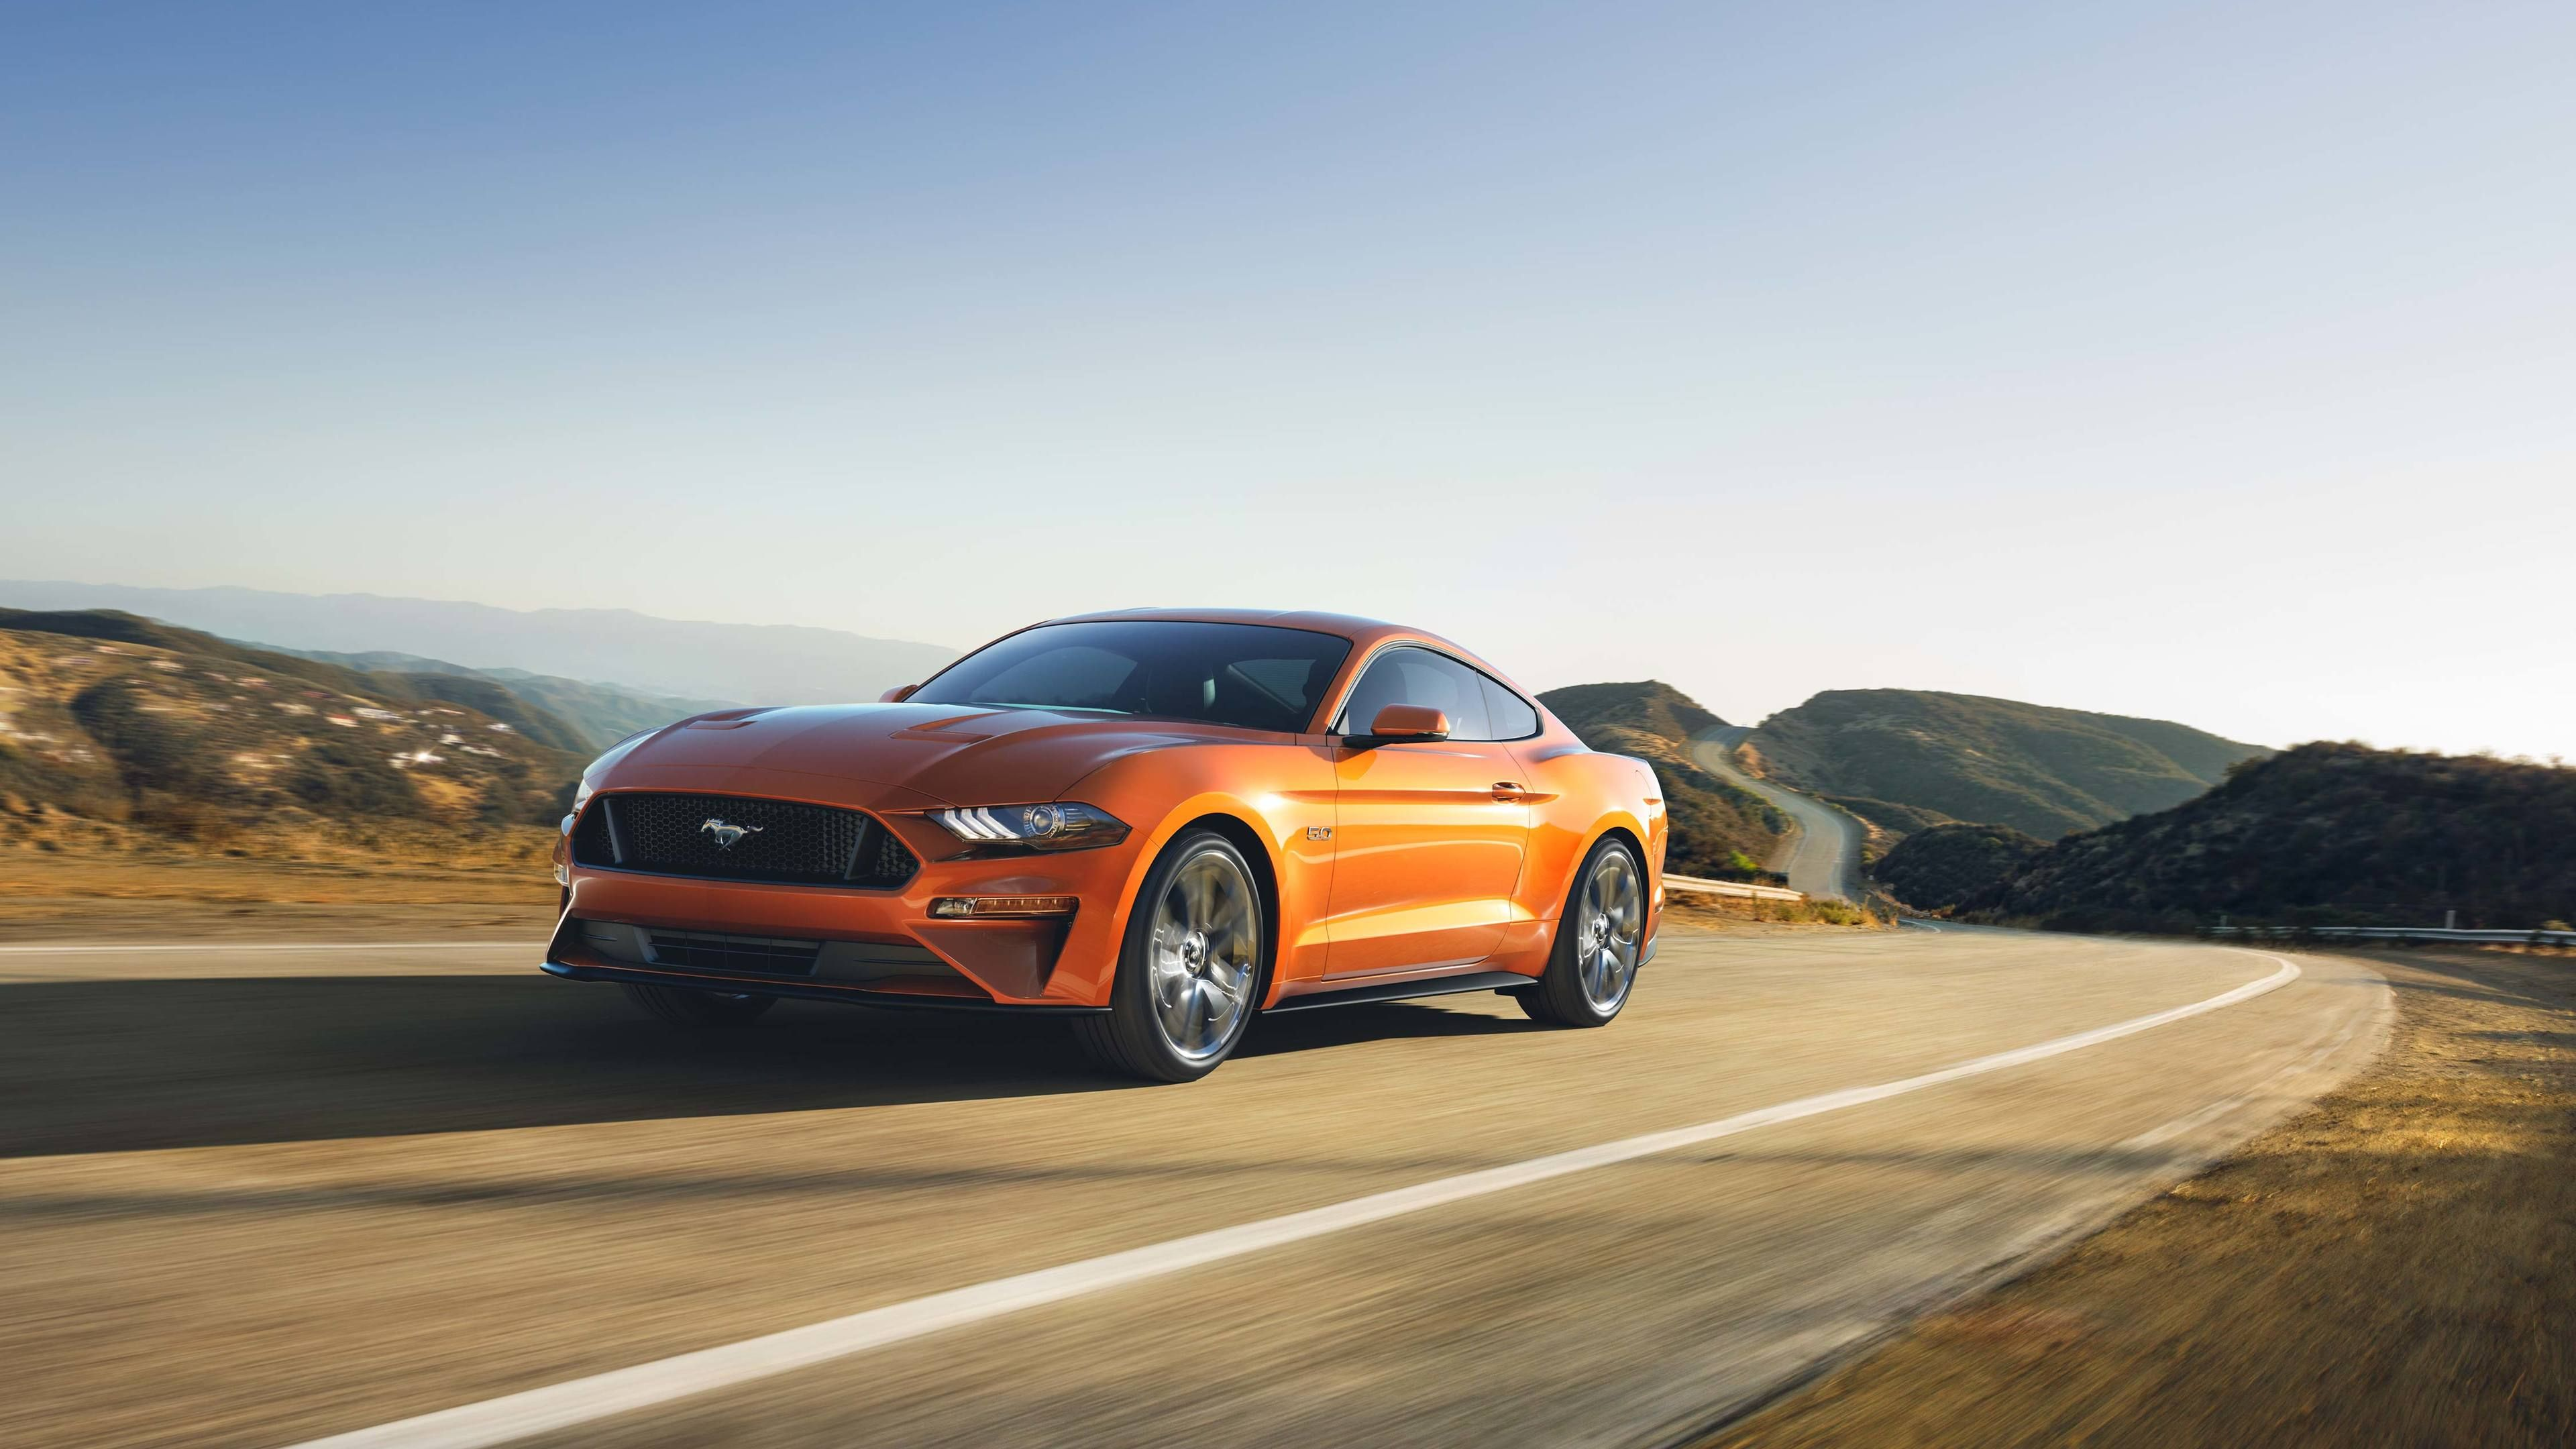 Ford Mustang GT 2018 4k hdwallpapers, ford mustang